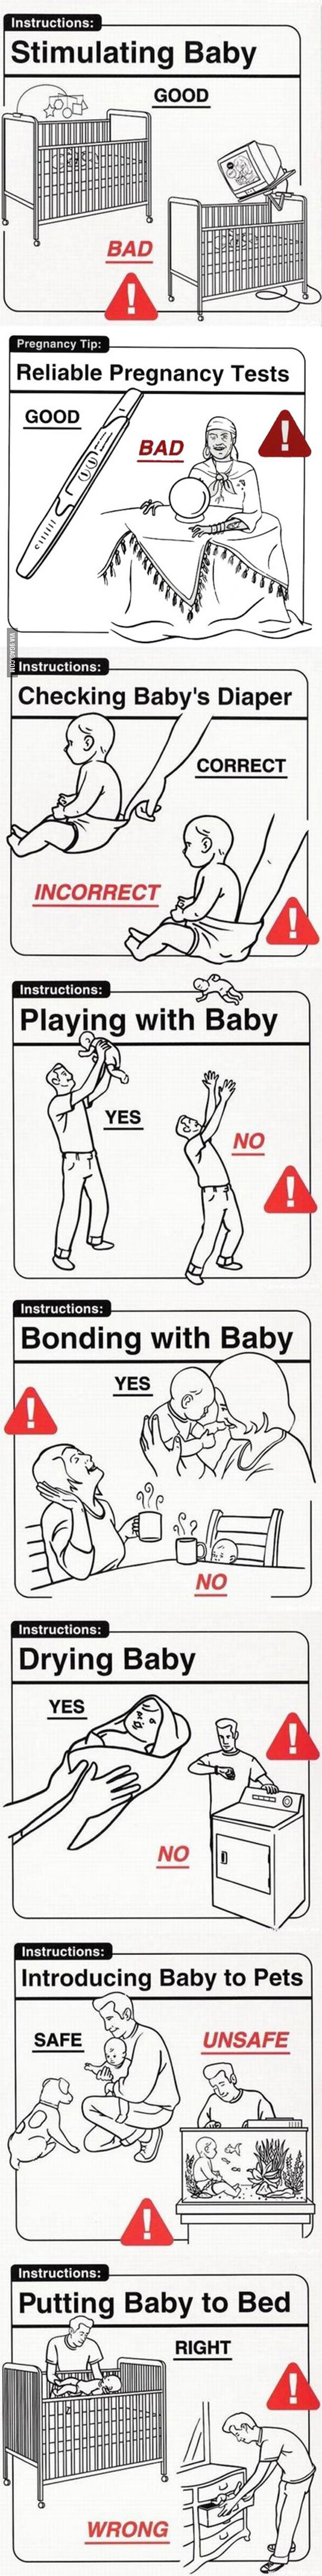 funny-parenting-lessons-cartoon-wrong